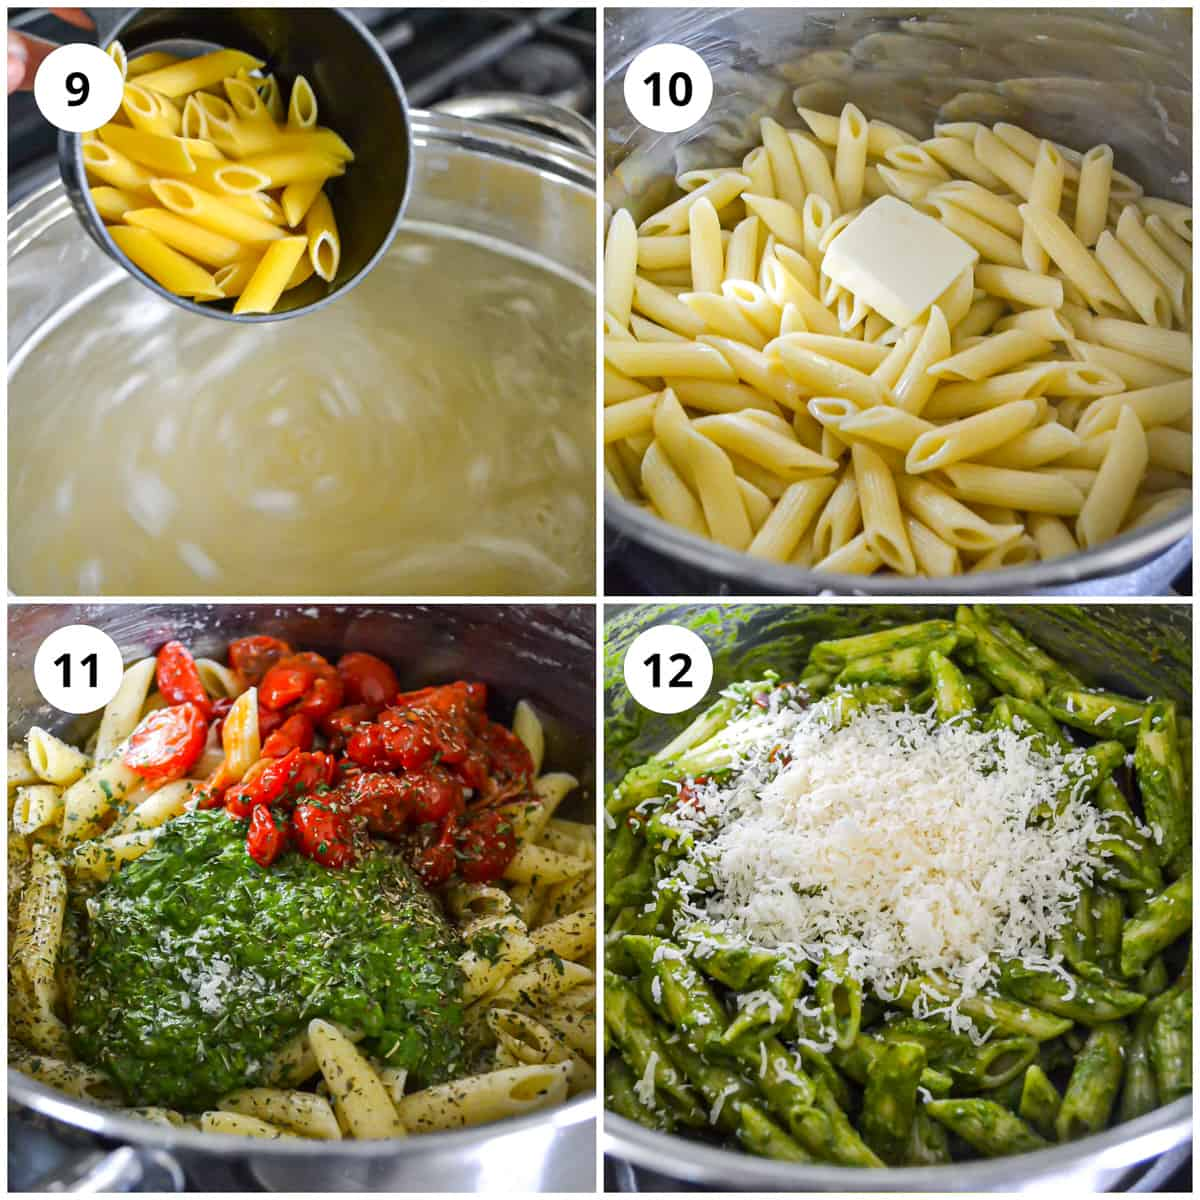 Photos showing how to make the spinach basil pesto pasta